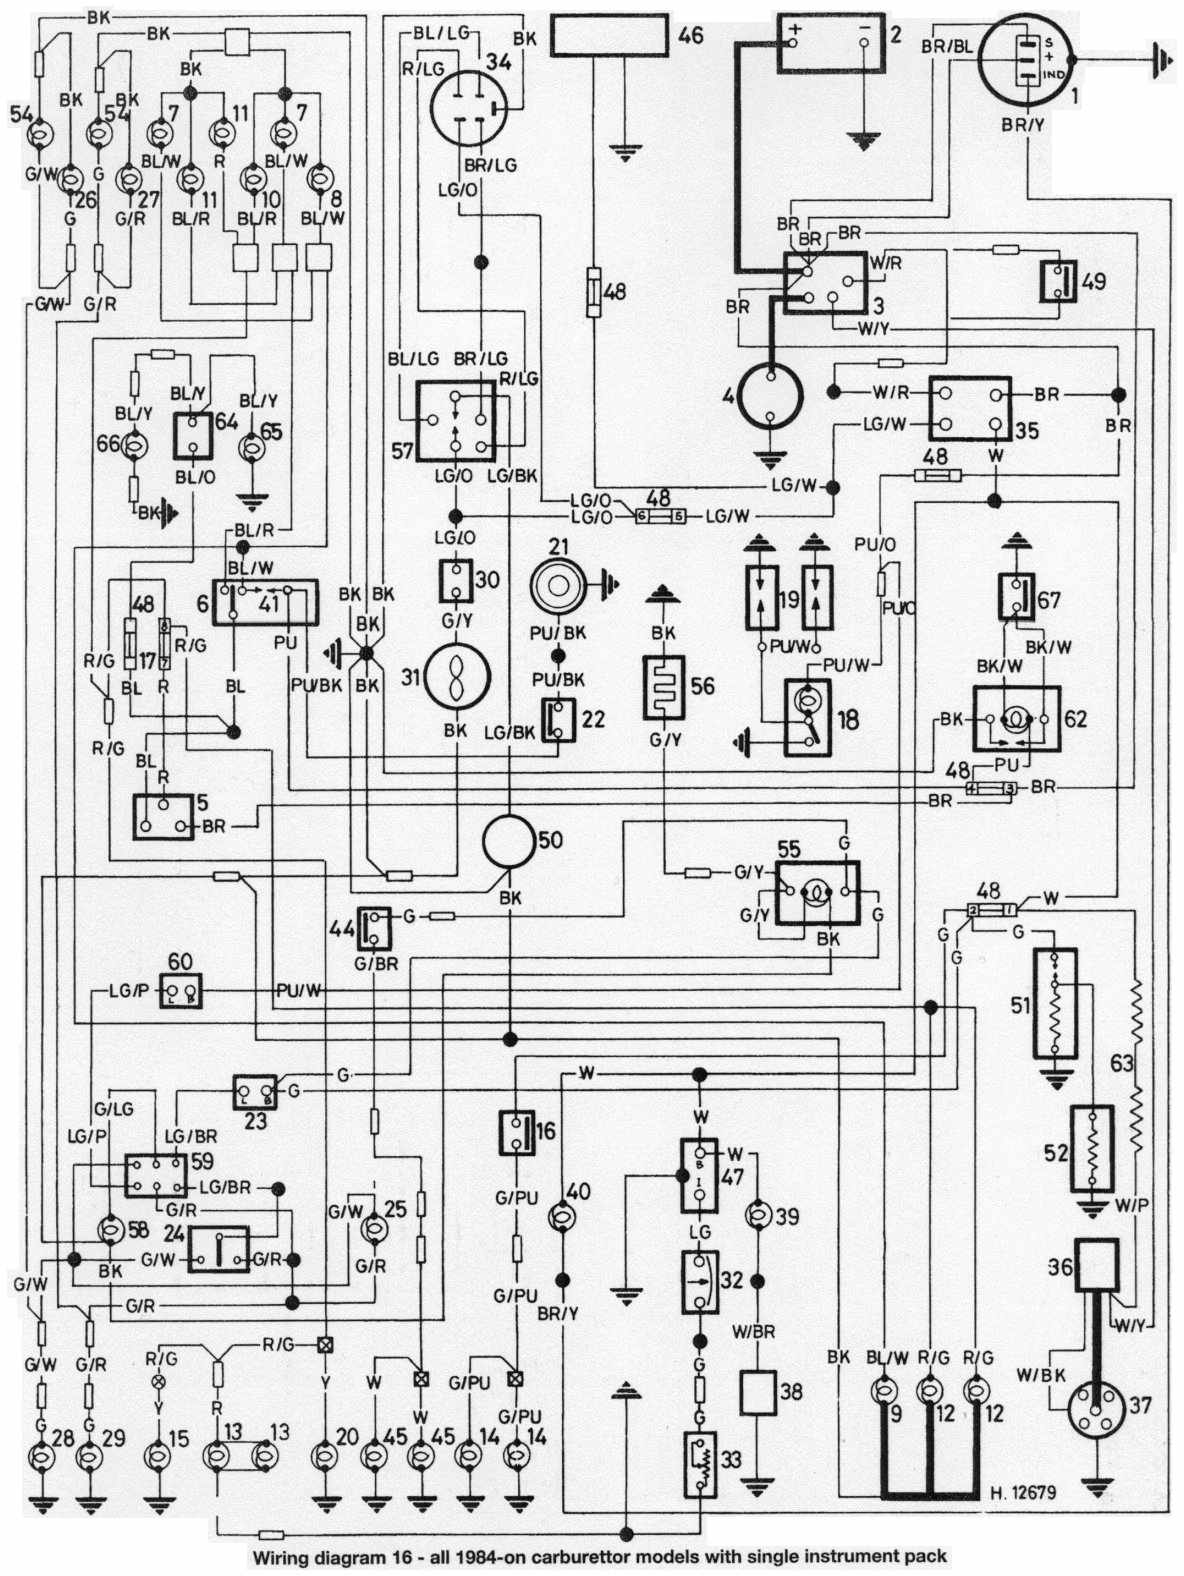 mini key wiring diagram 1985 austin mini wiring diagram - wiring diagram